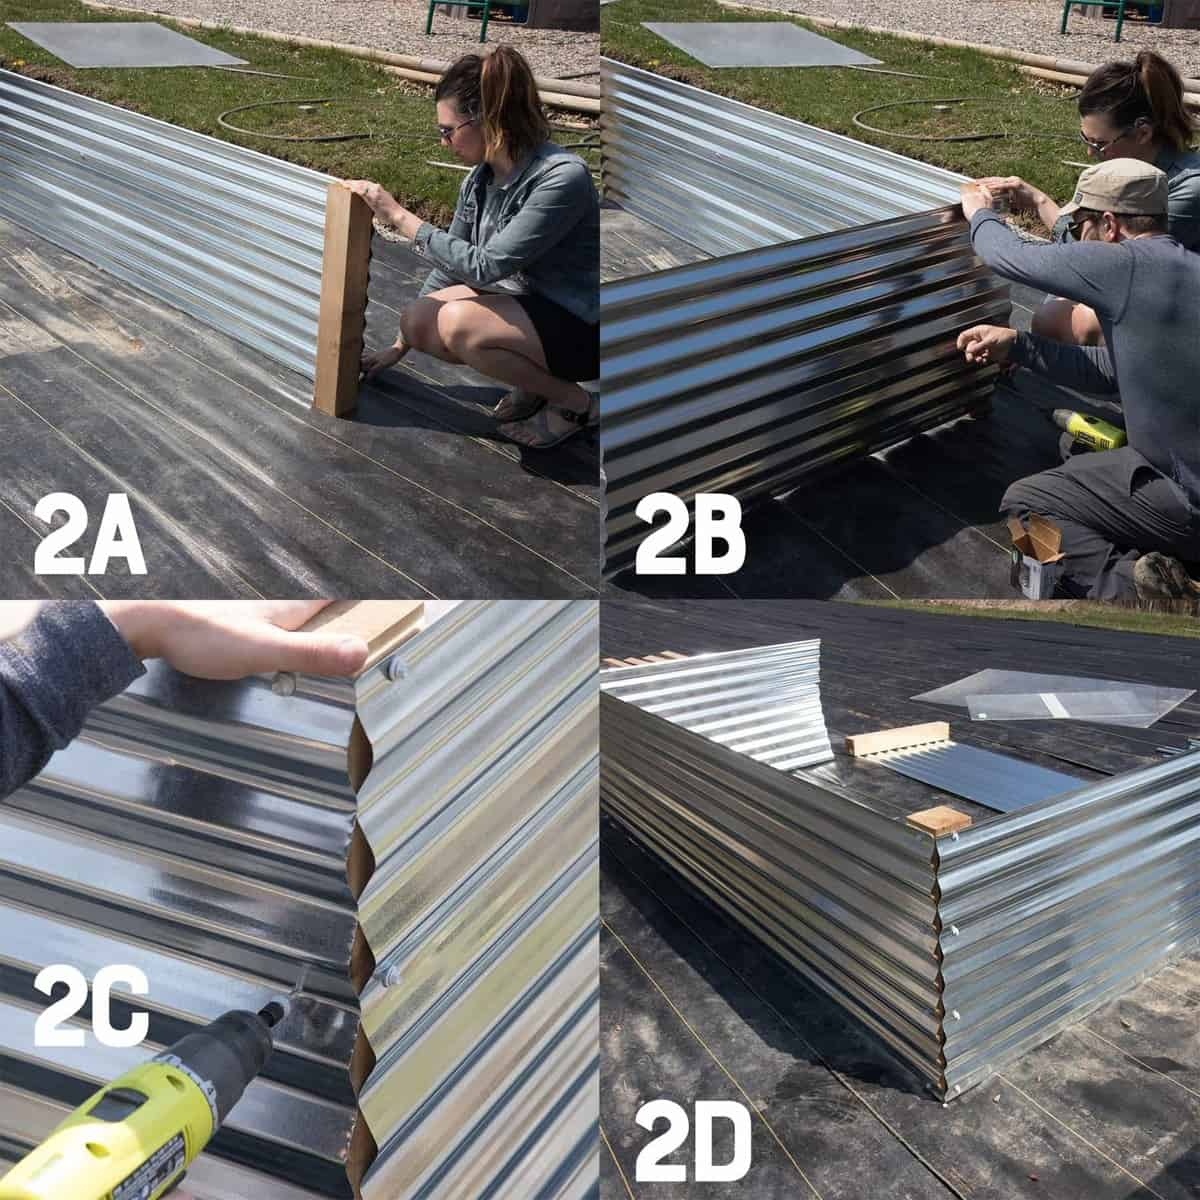 Four image collage of building the second and third sides of a galvanized steel raised garden bed